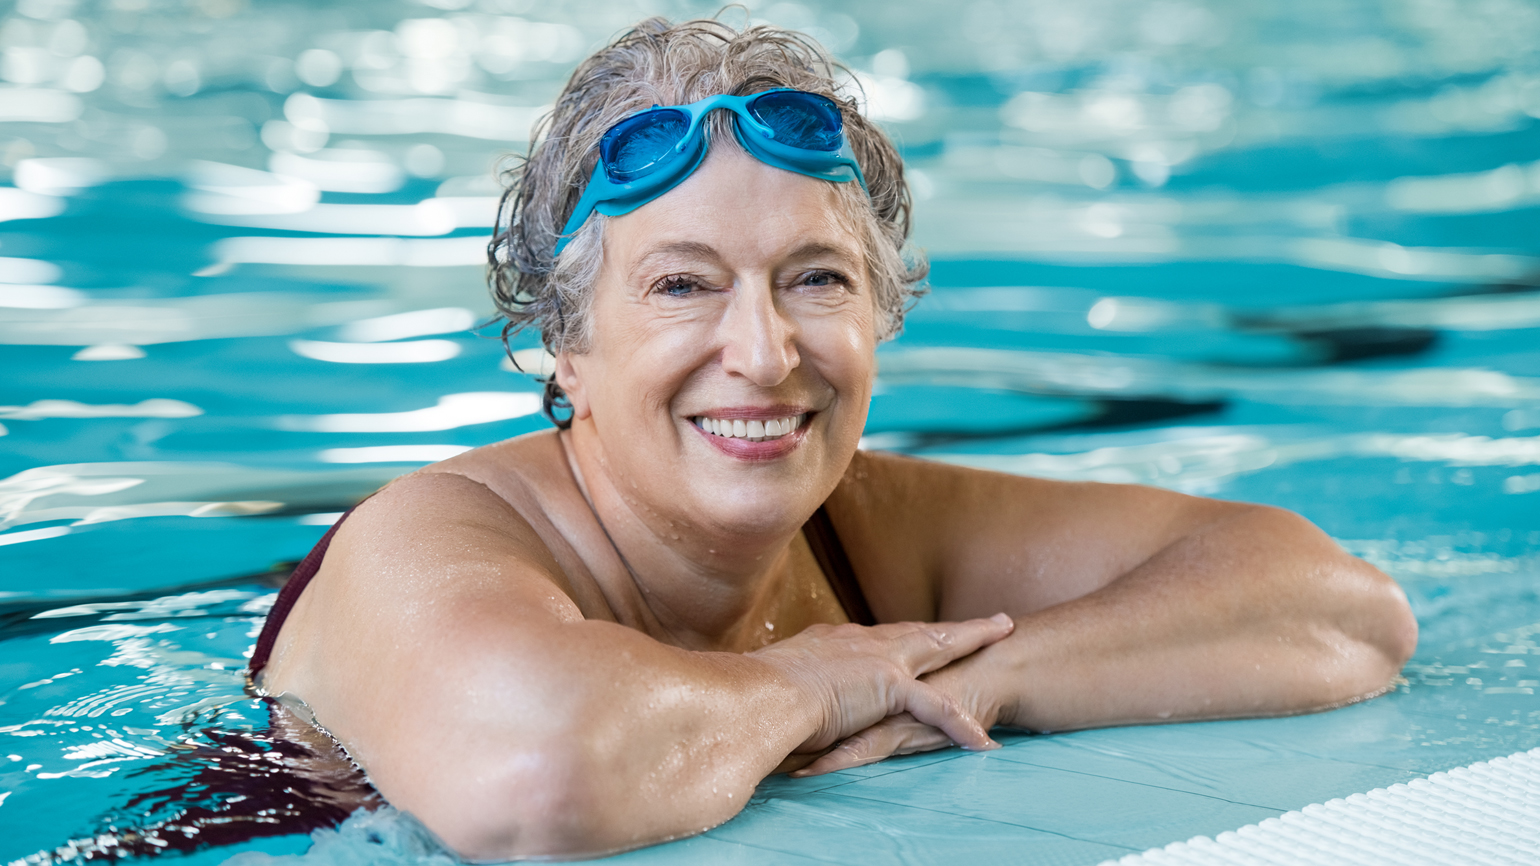 A senior citizen woman enjoying herself in the pool.